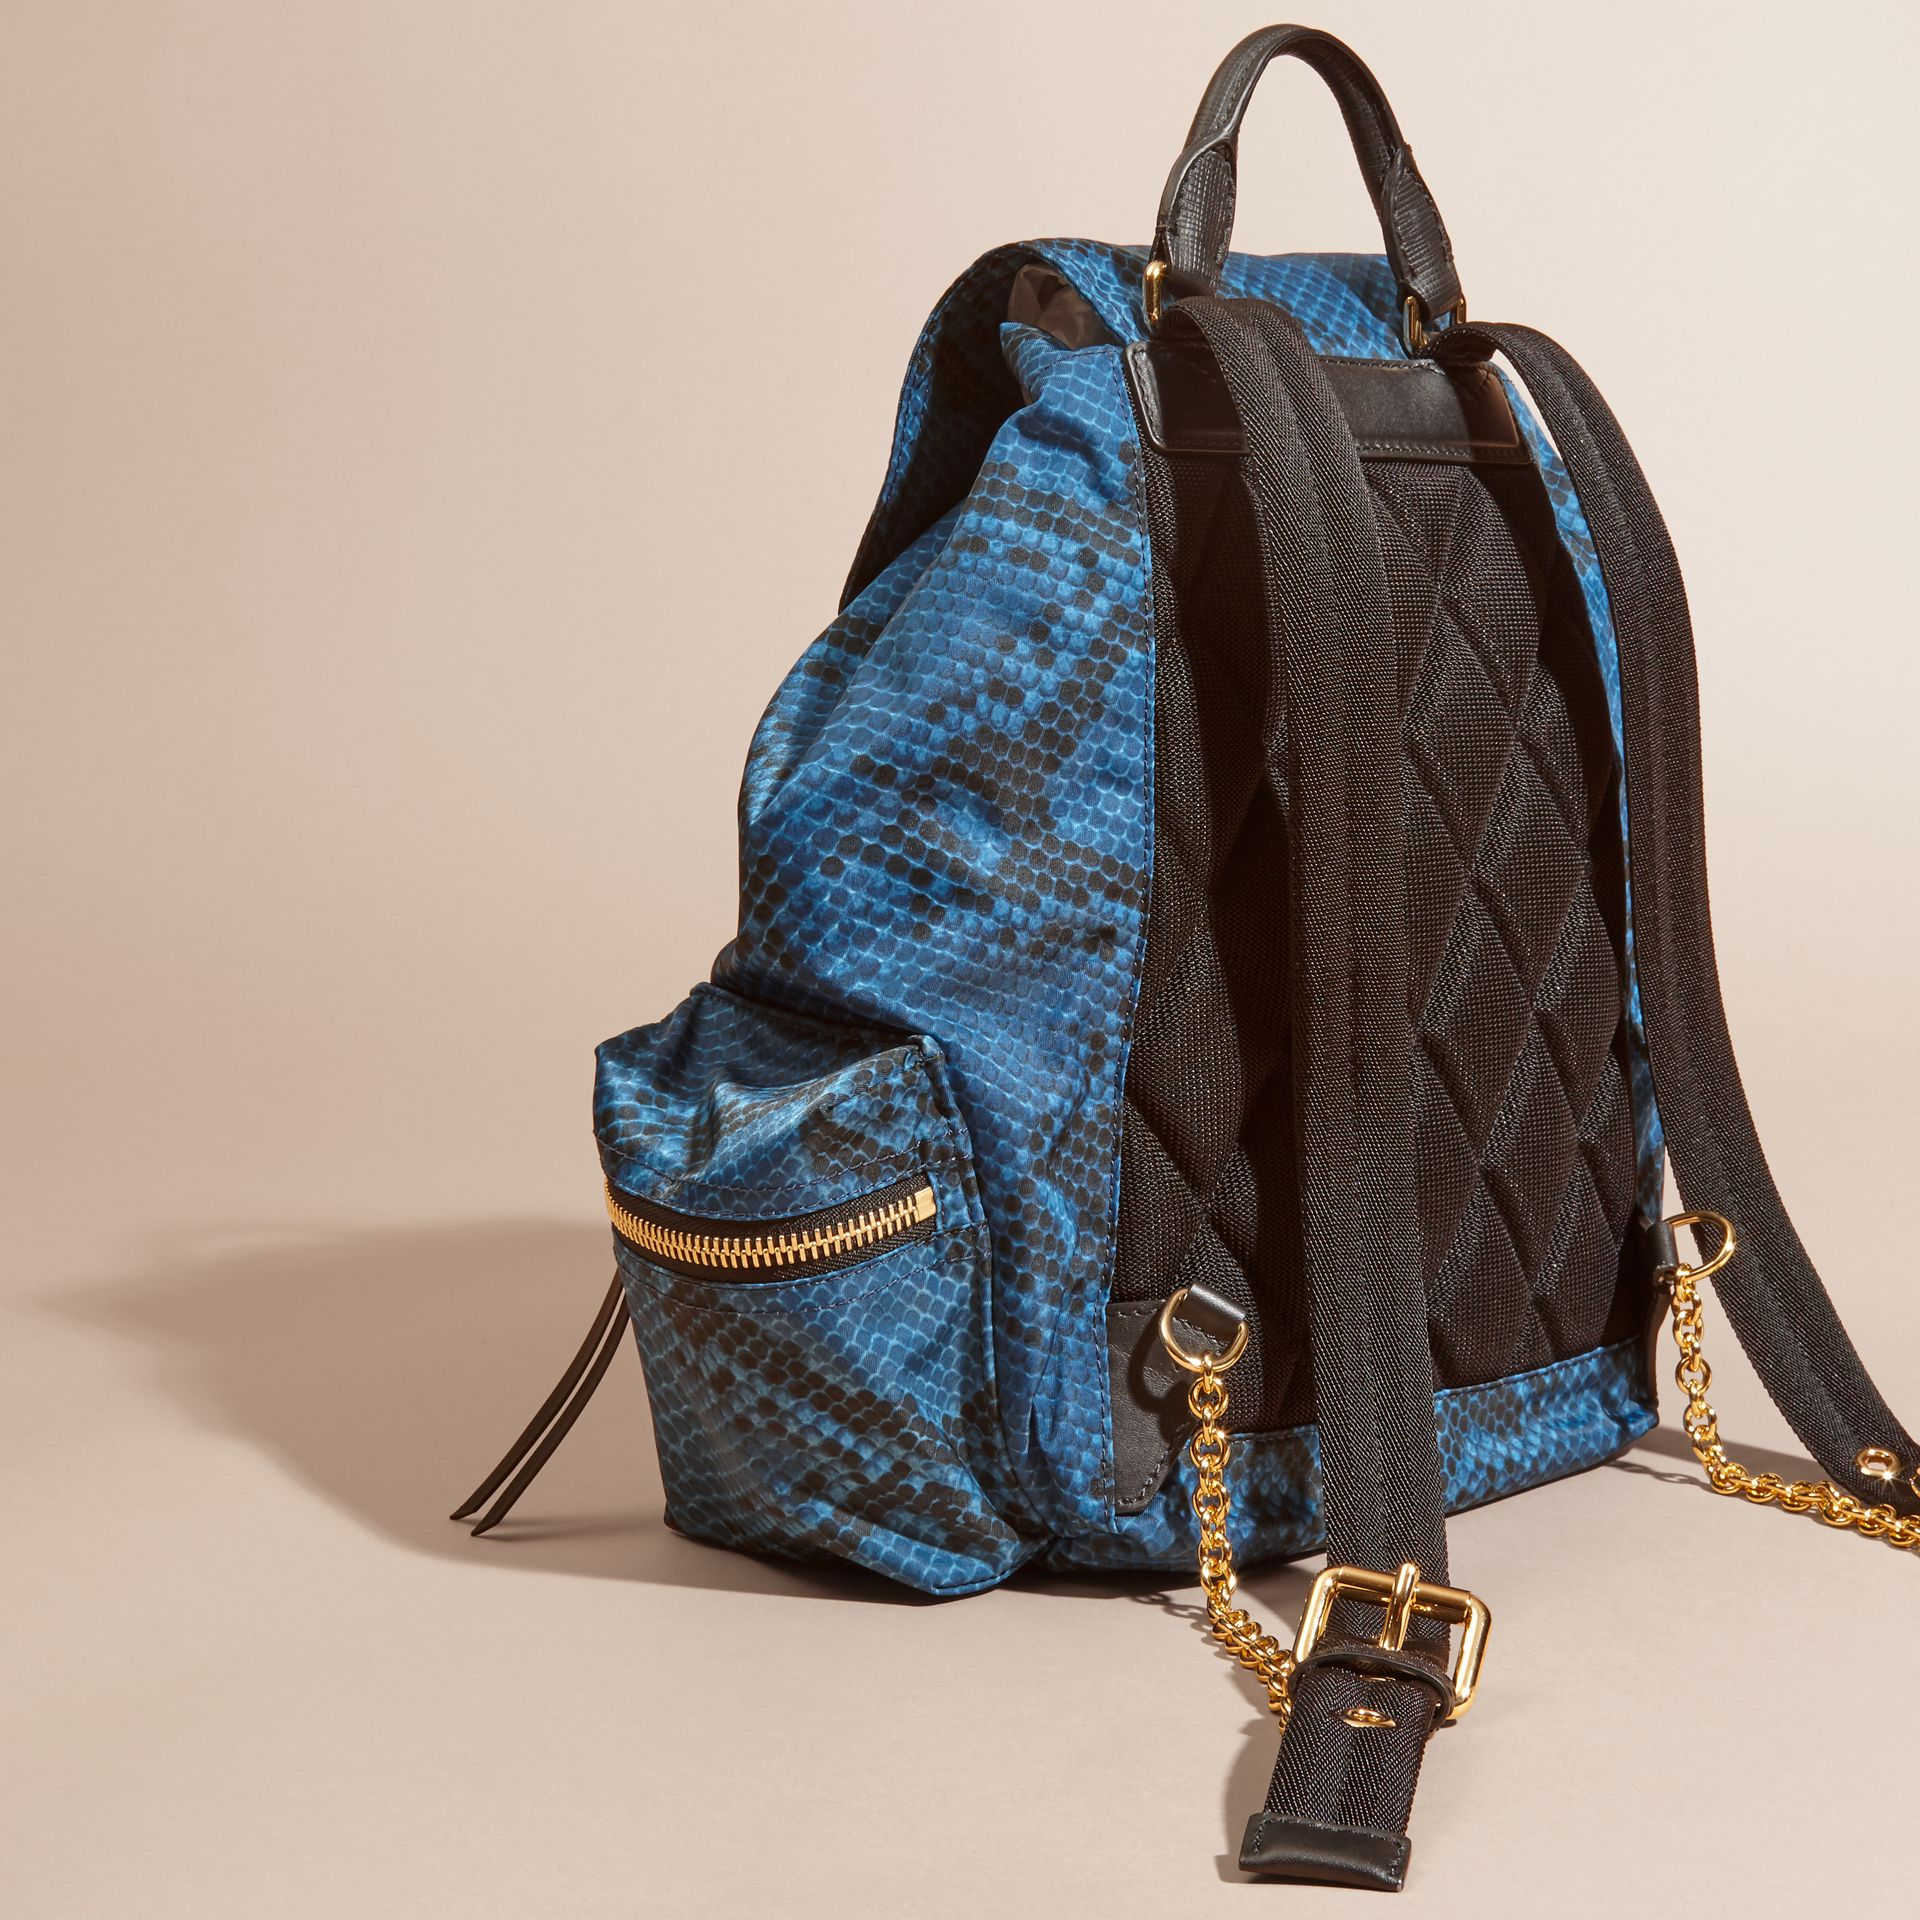 Sac The Rucksack medium en nylon à imprimé python et cuir Bleu - photo de la galerie 4